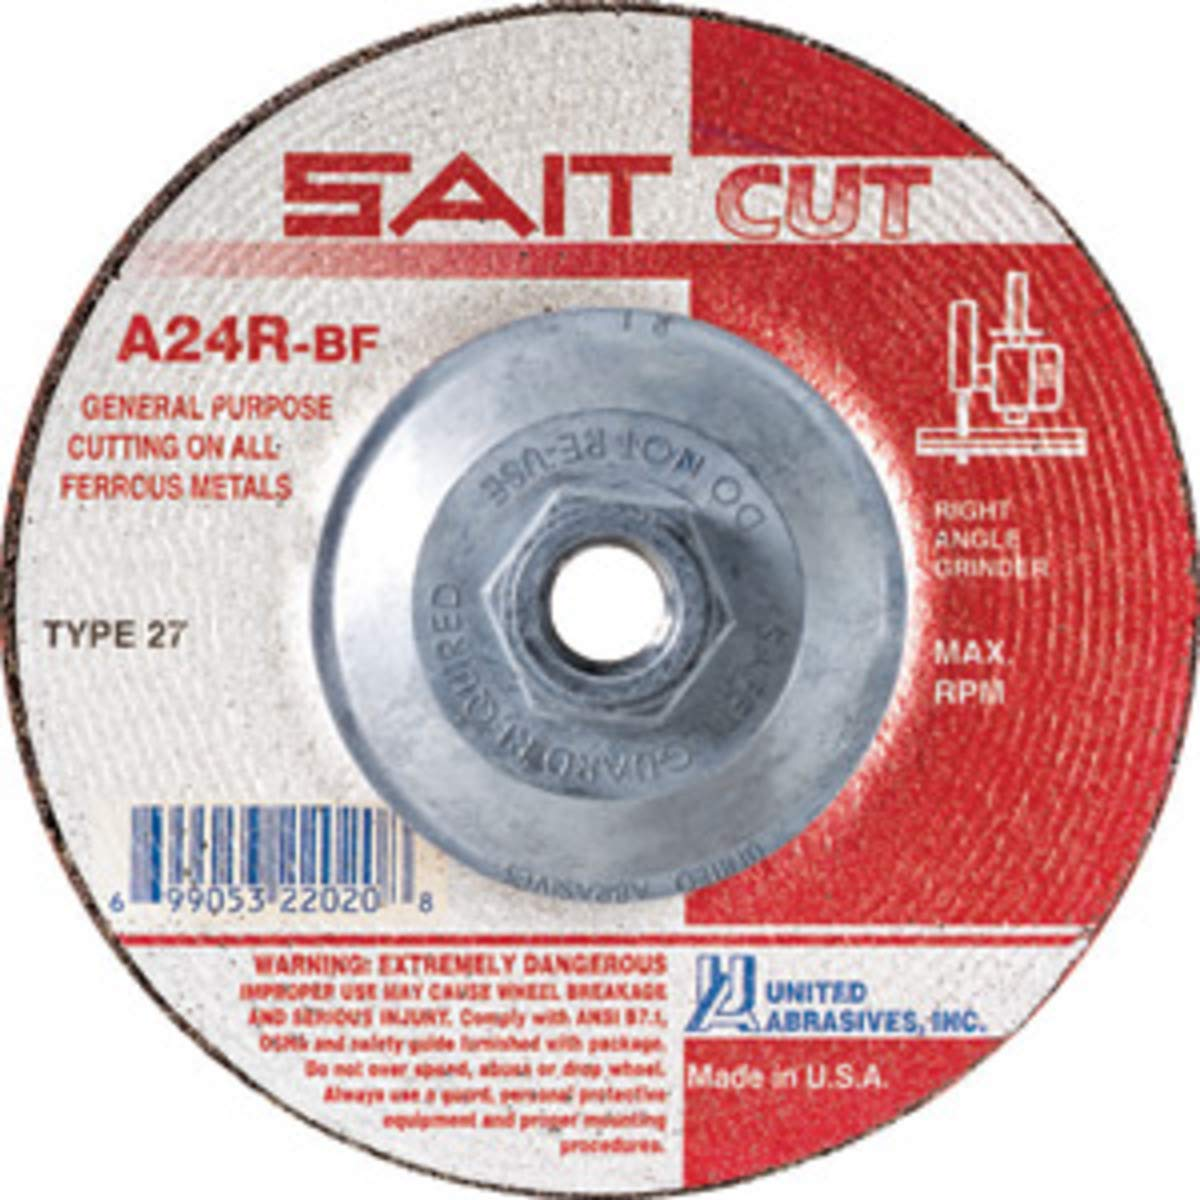 United Abrasives 4 1/2'' X 3/32'' X 5/8'' - 11 A24R 24 Grit Aluminum Oxide Type 27 Cut Off Wheel, Package Size: 10 Each by United Abrasives Inc.